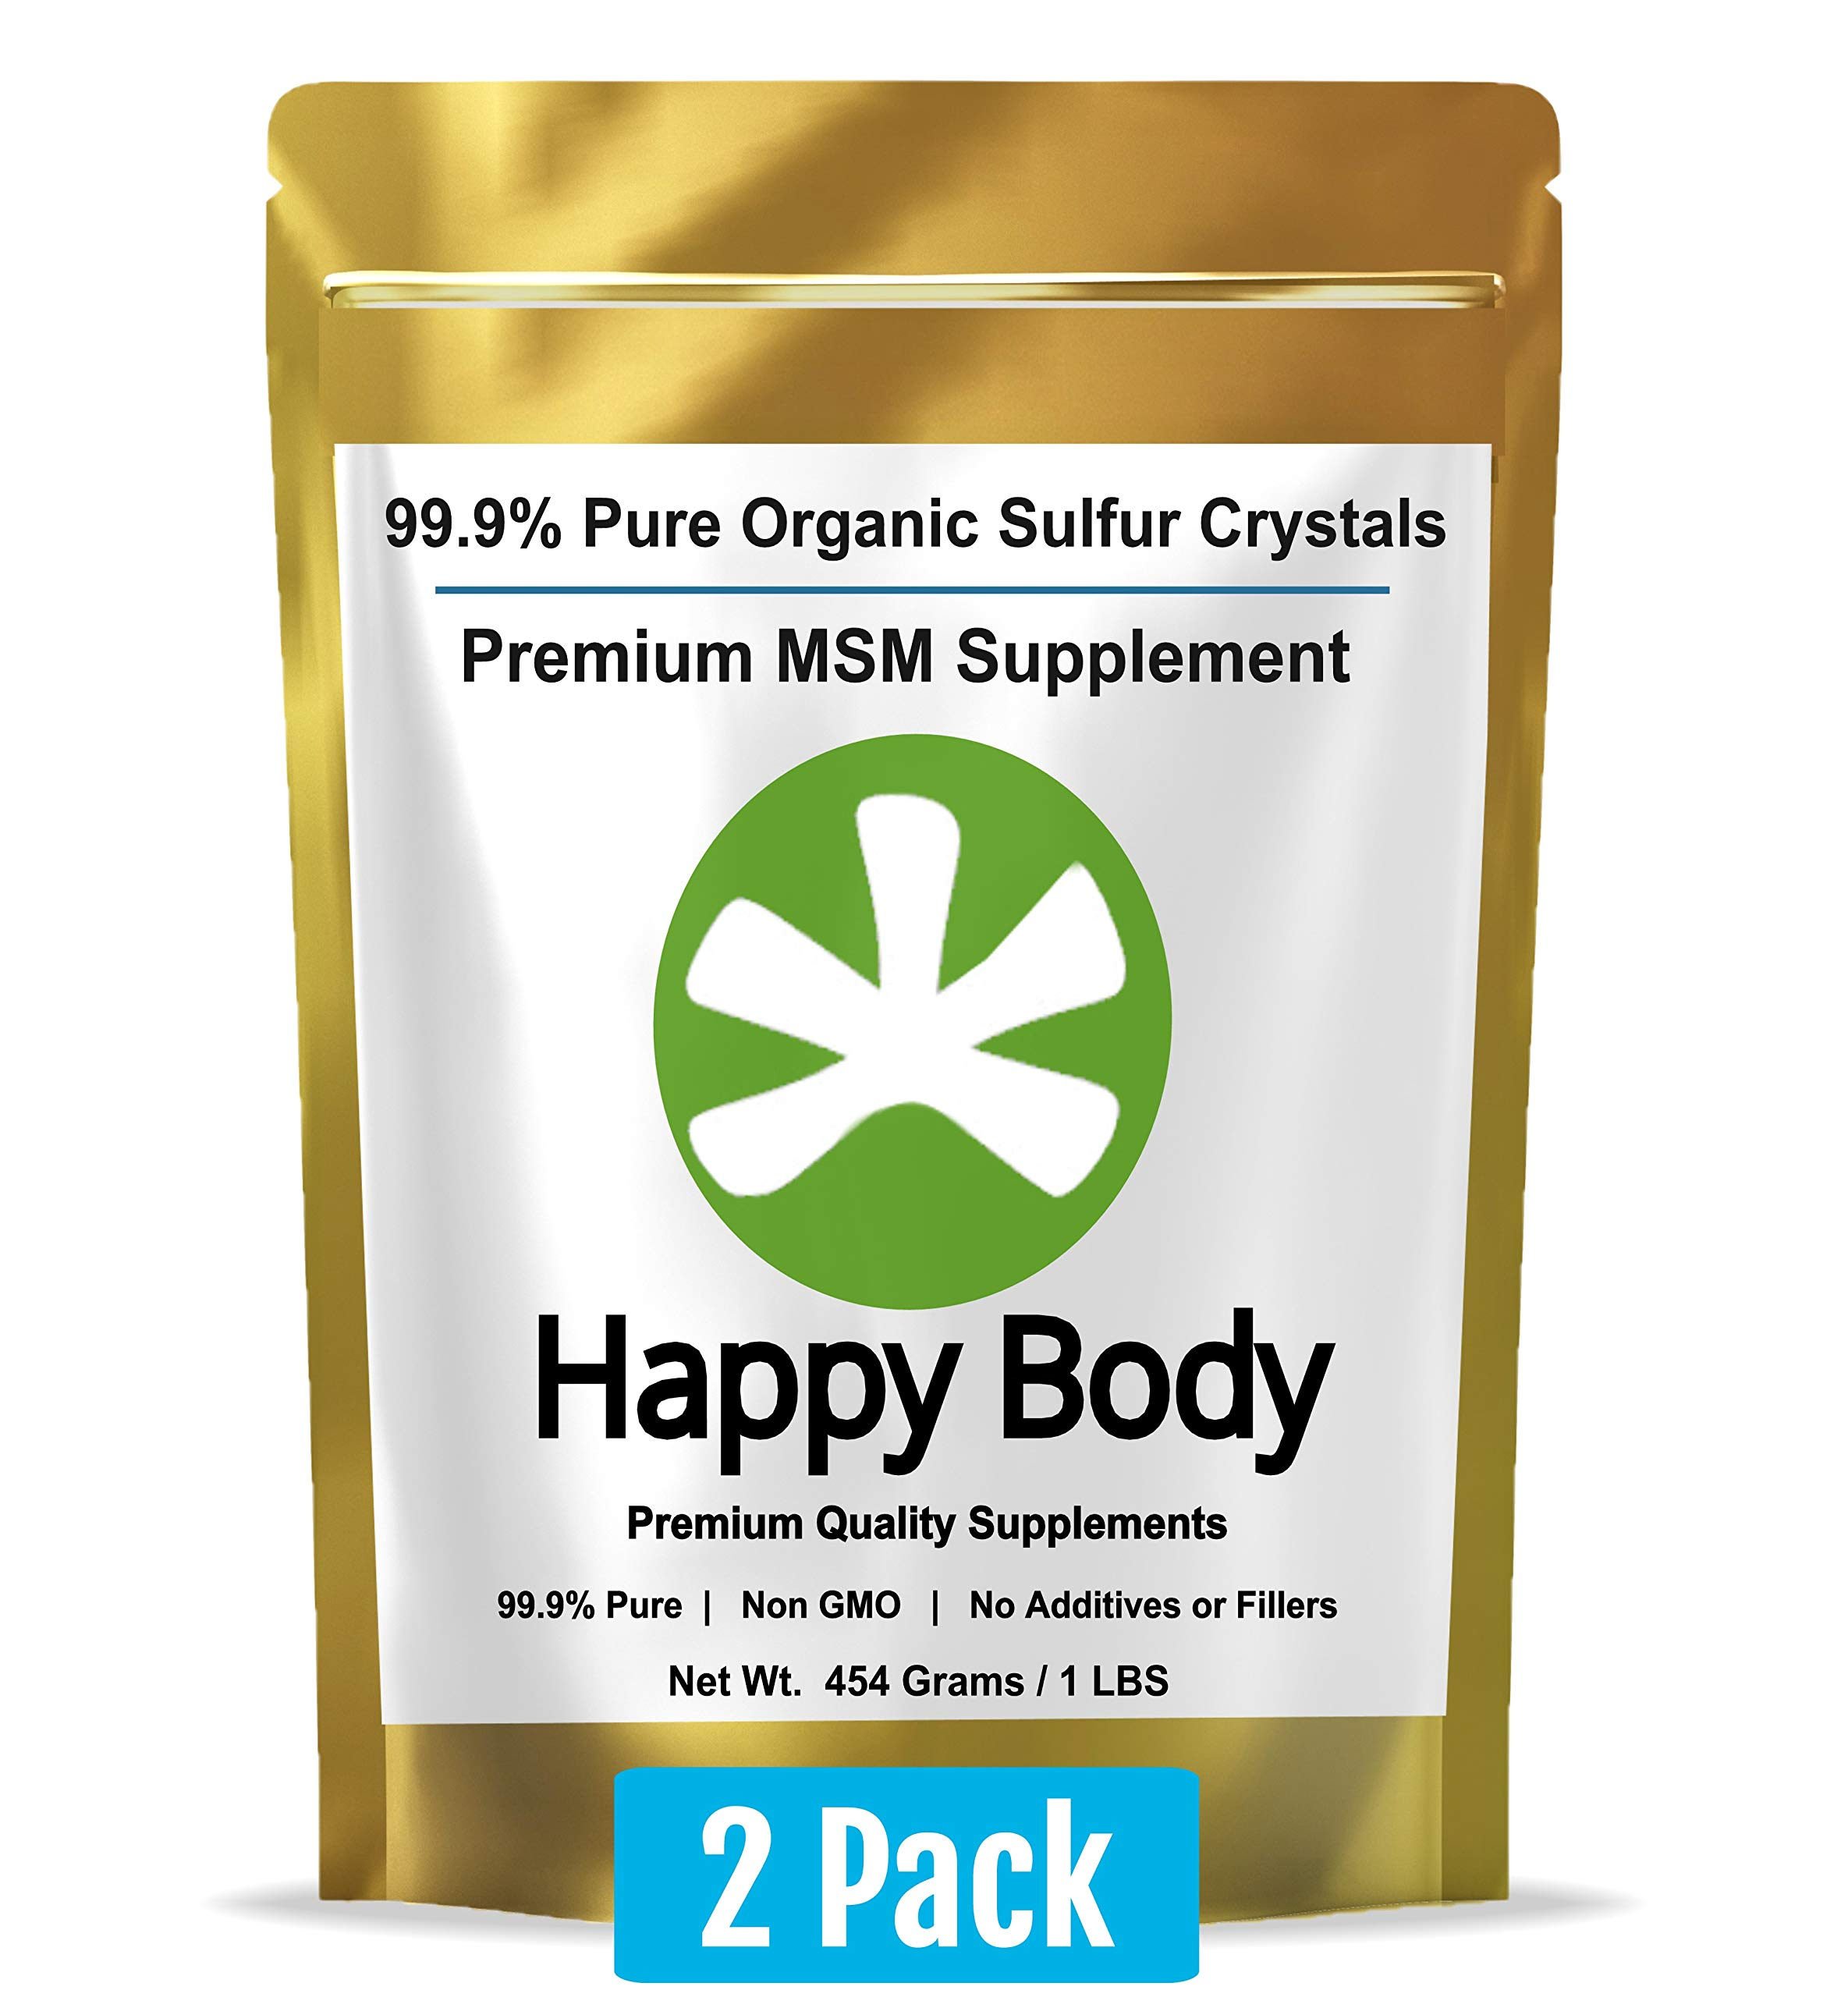 Organic Sulfur Crystals - 99.9% Pure MSM Crystals, Premium MSM Supplement - 2 x 1 LBS Pack